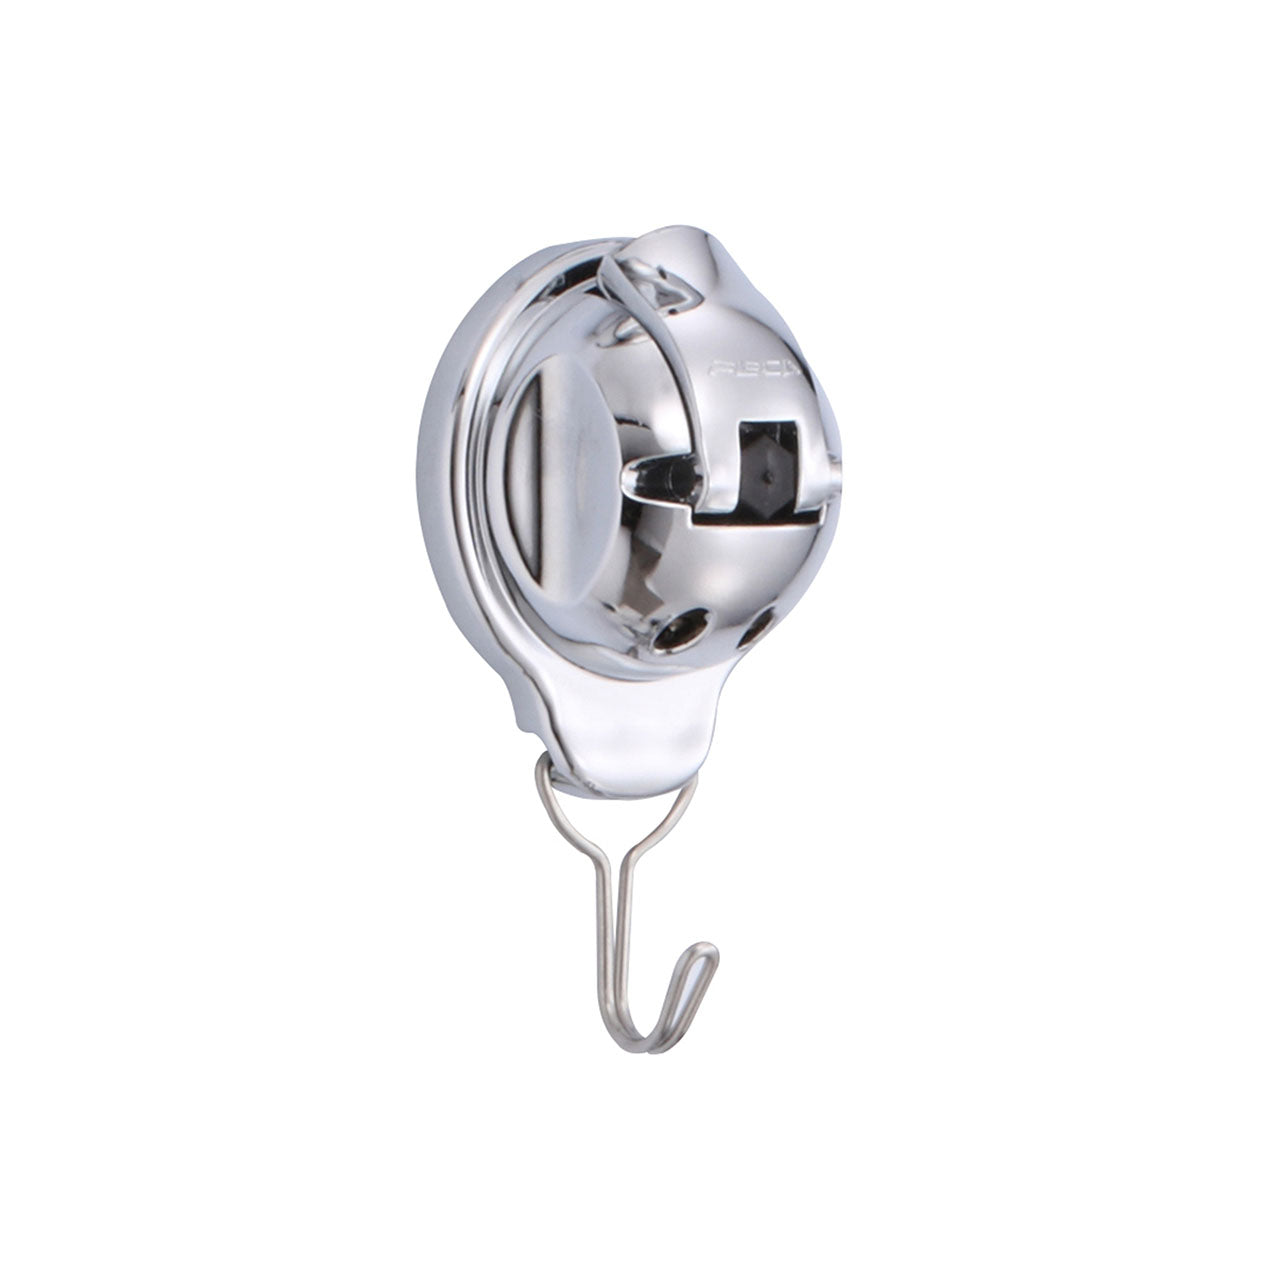 S12 SAMURAI SUCTION HOOK - 4KG